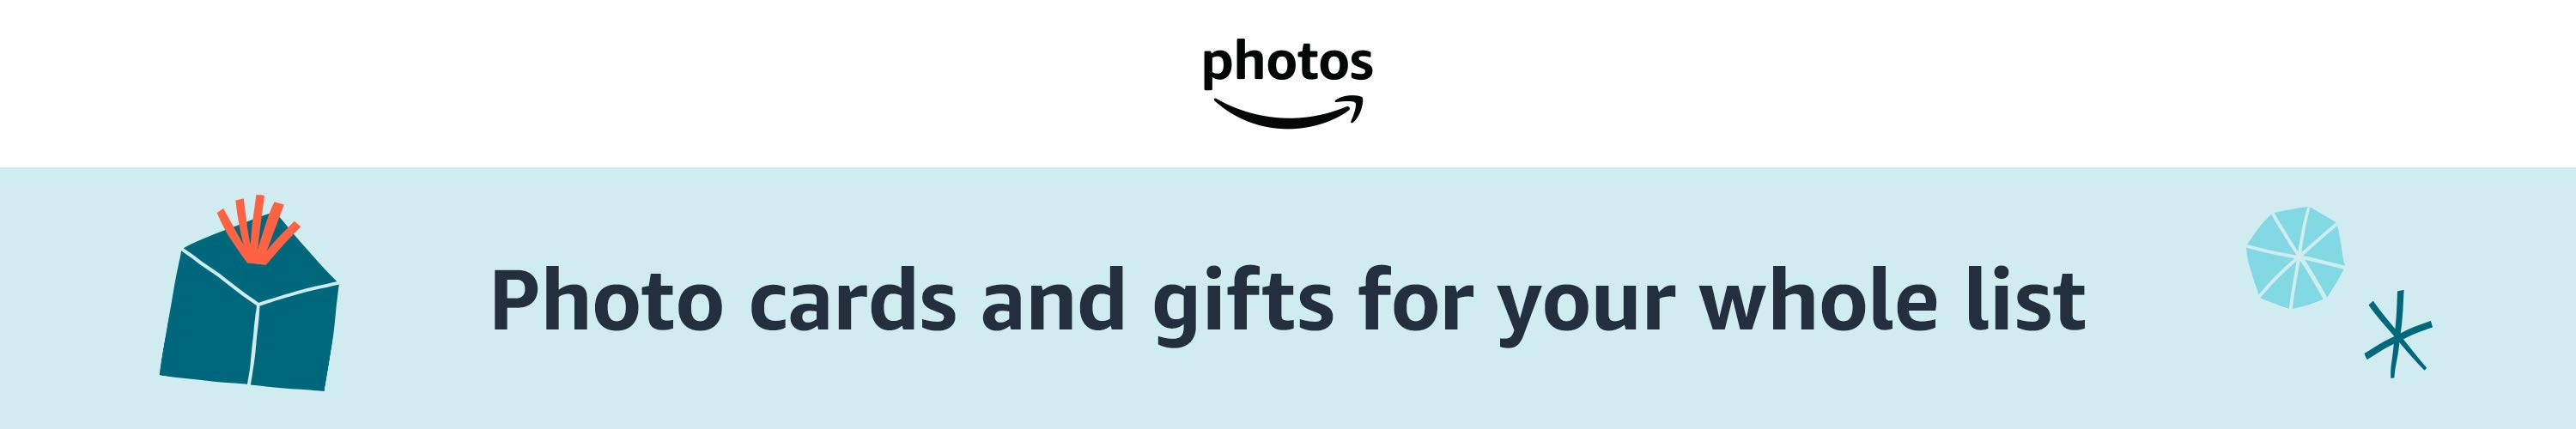 Photo cards and gifts for your whole list